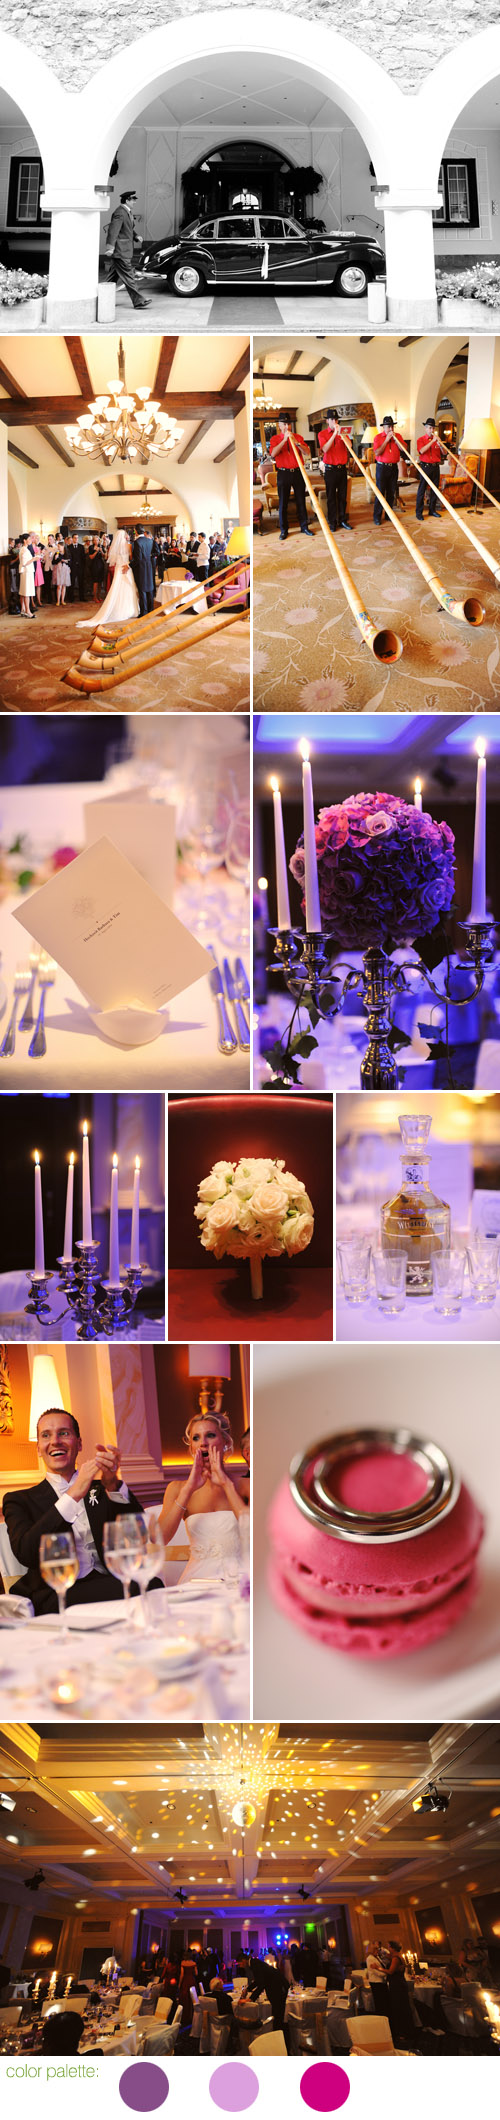 colorful and personal wedding reception in St. Moritz, Switzerland, photos by Andrea & Marcus Photography